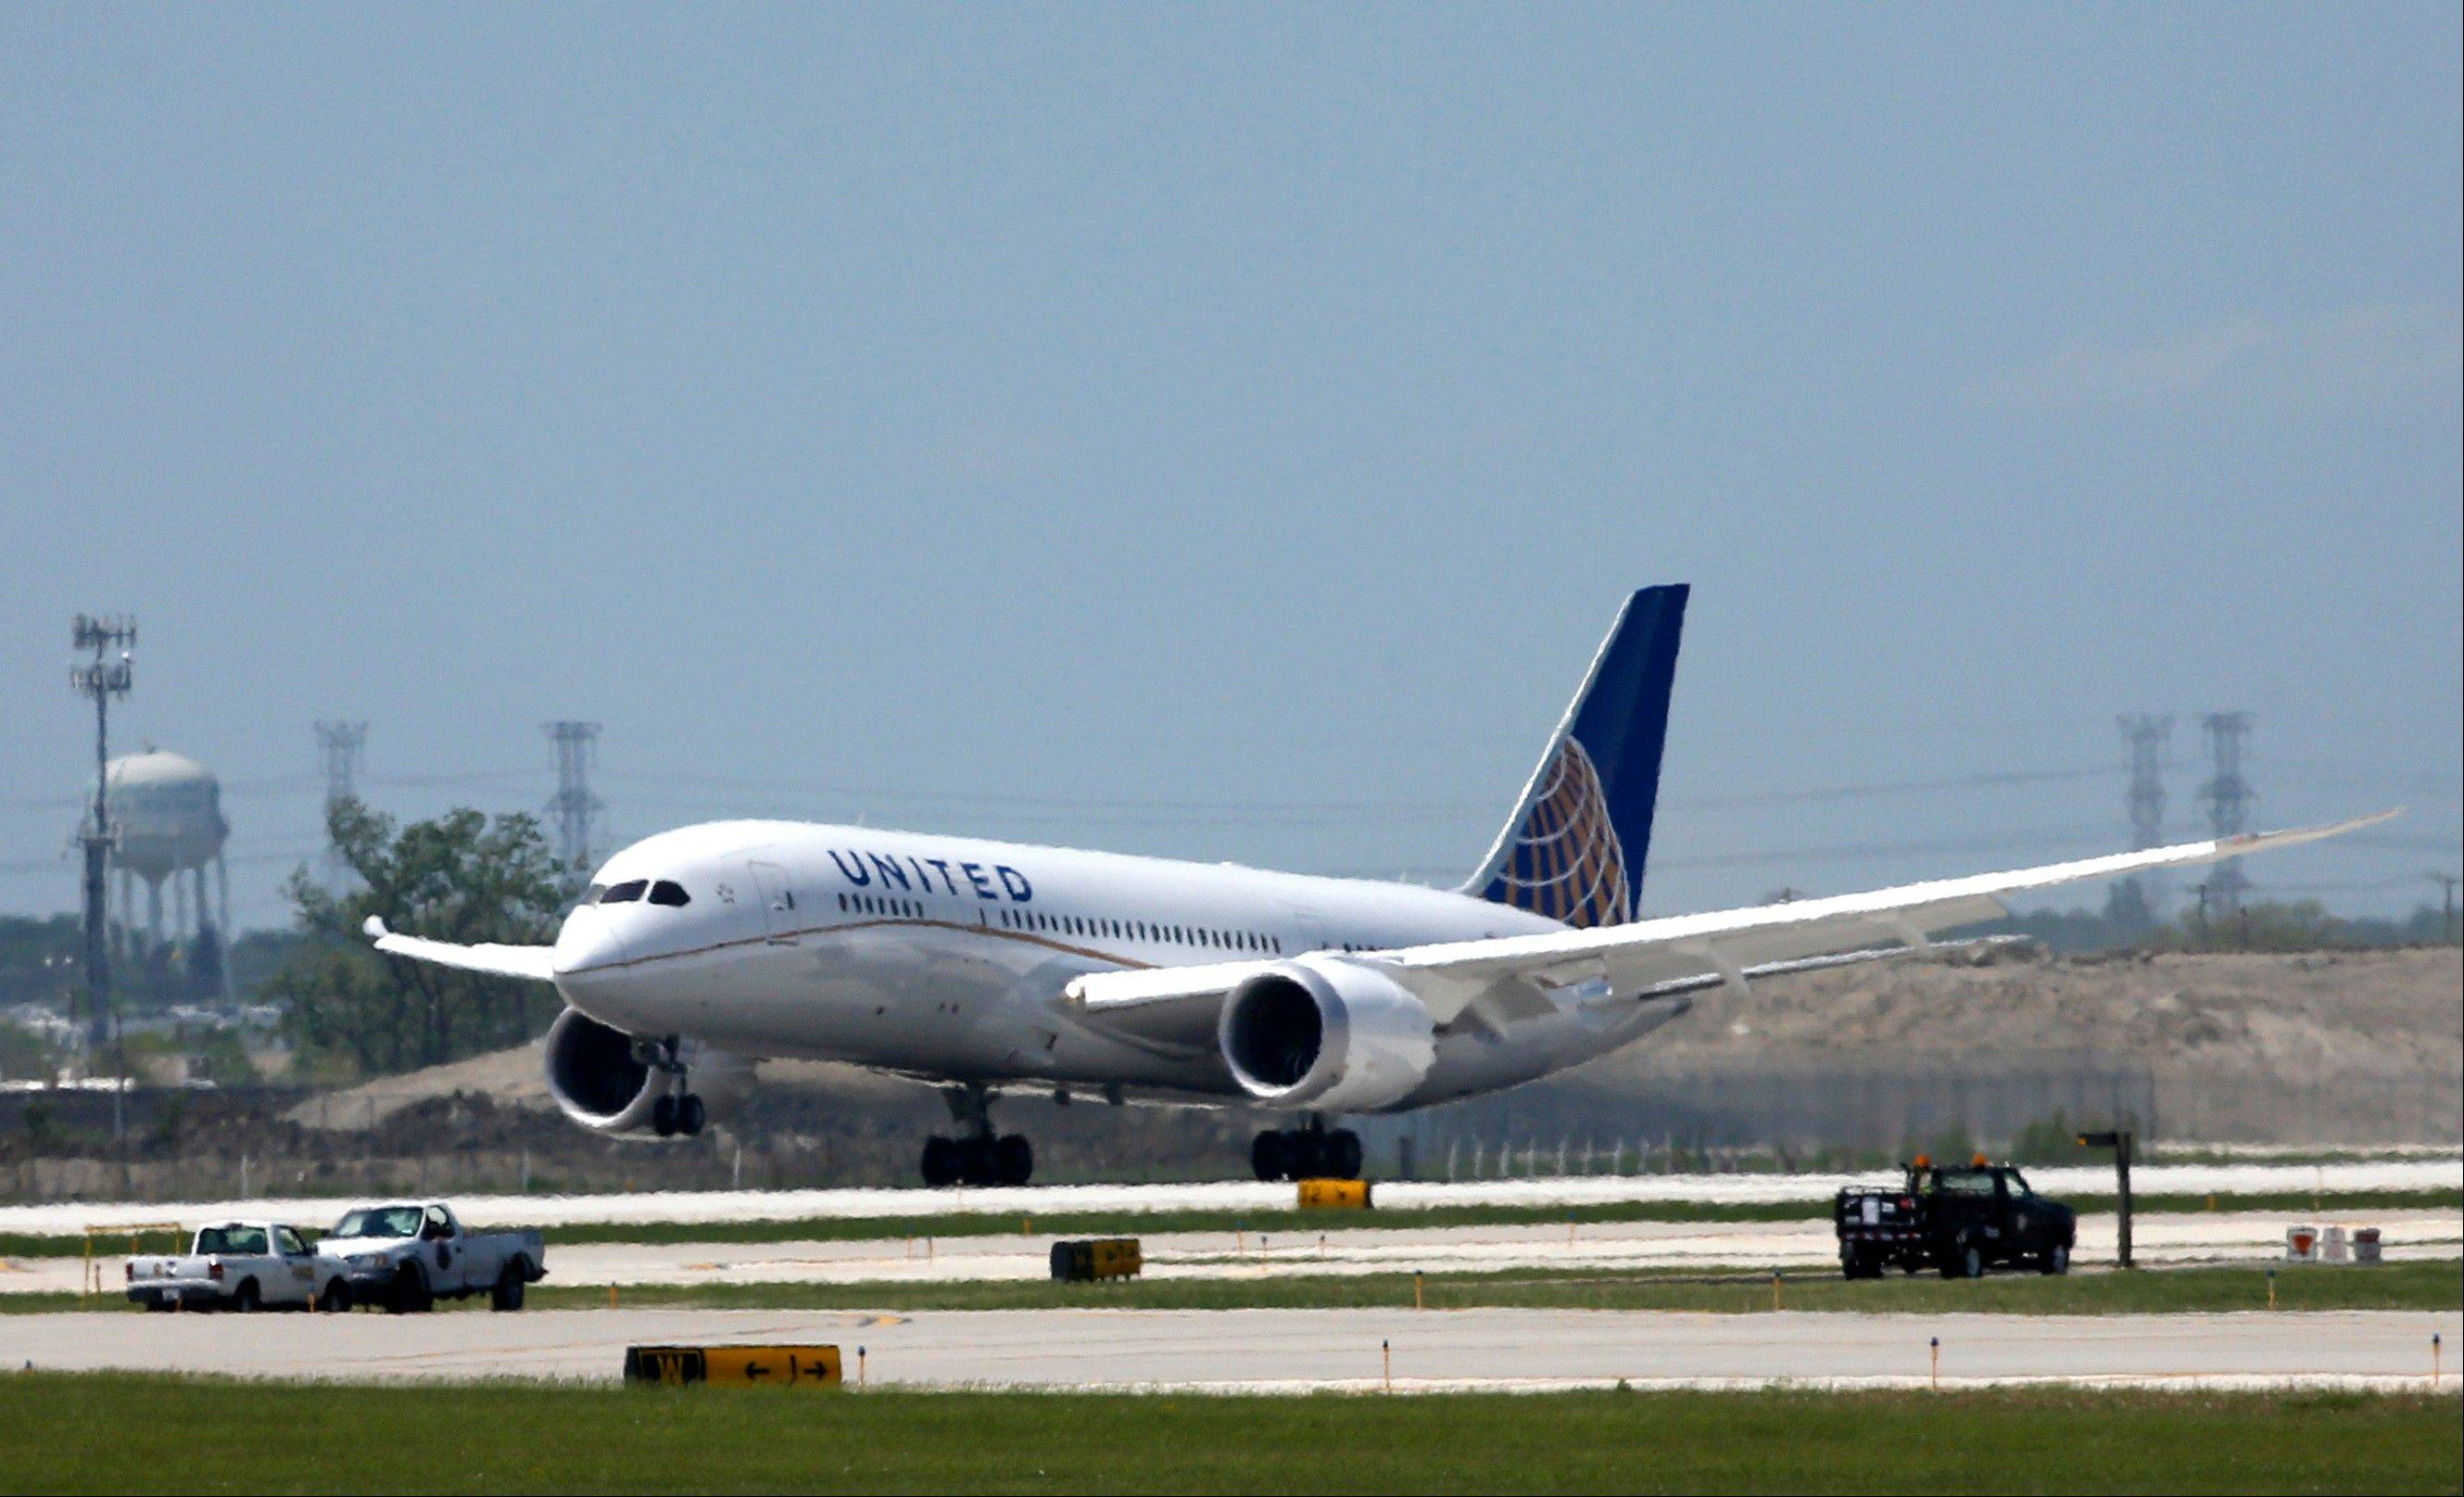 A United Airlines Boeing 787 Dreamliner aircraft lands at Chicago's O'Hare International Airport Monday. The planes are returning to the air after being grounded for four months by the federal government because of smoldering batteries on 787s owned by other airlines.